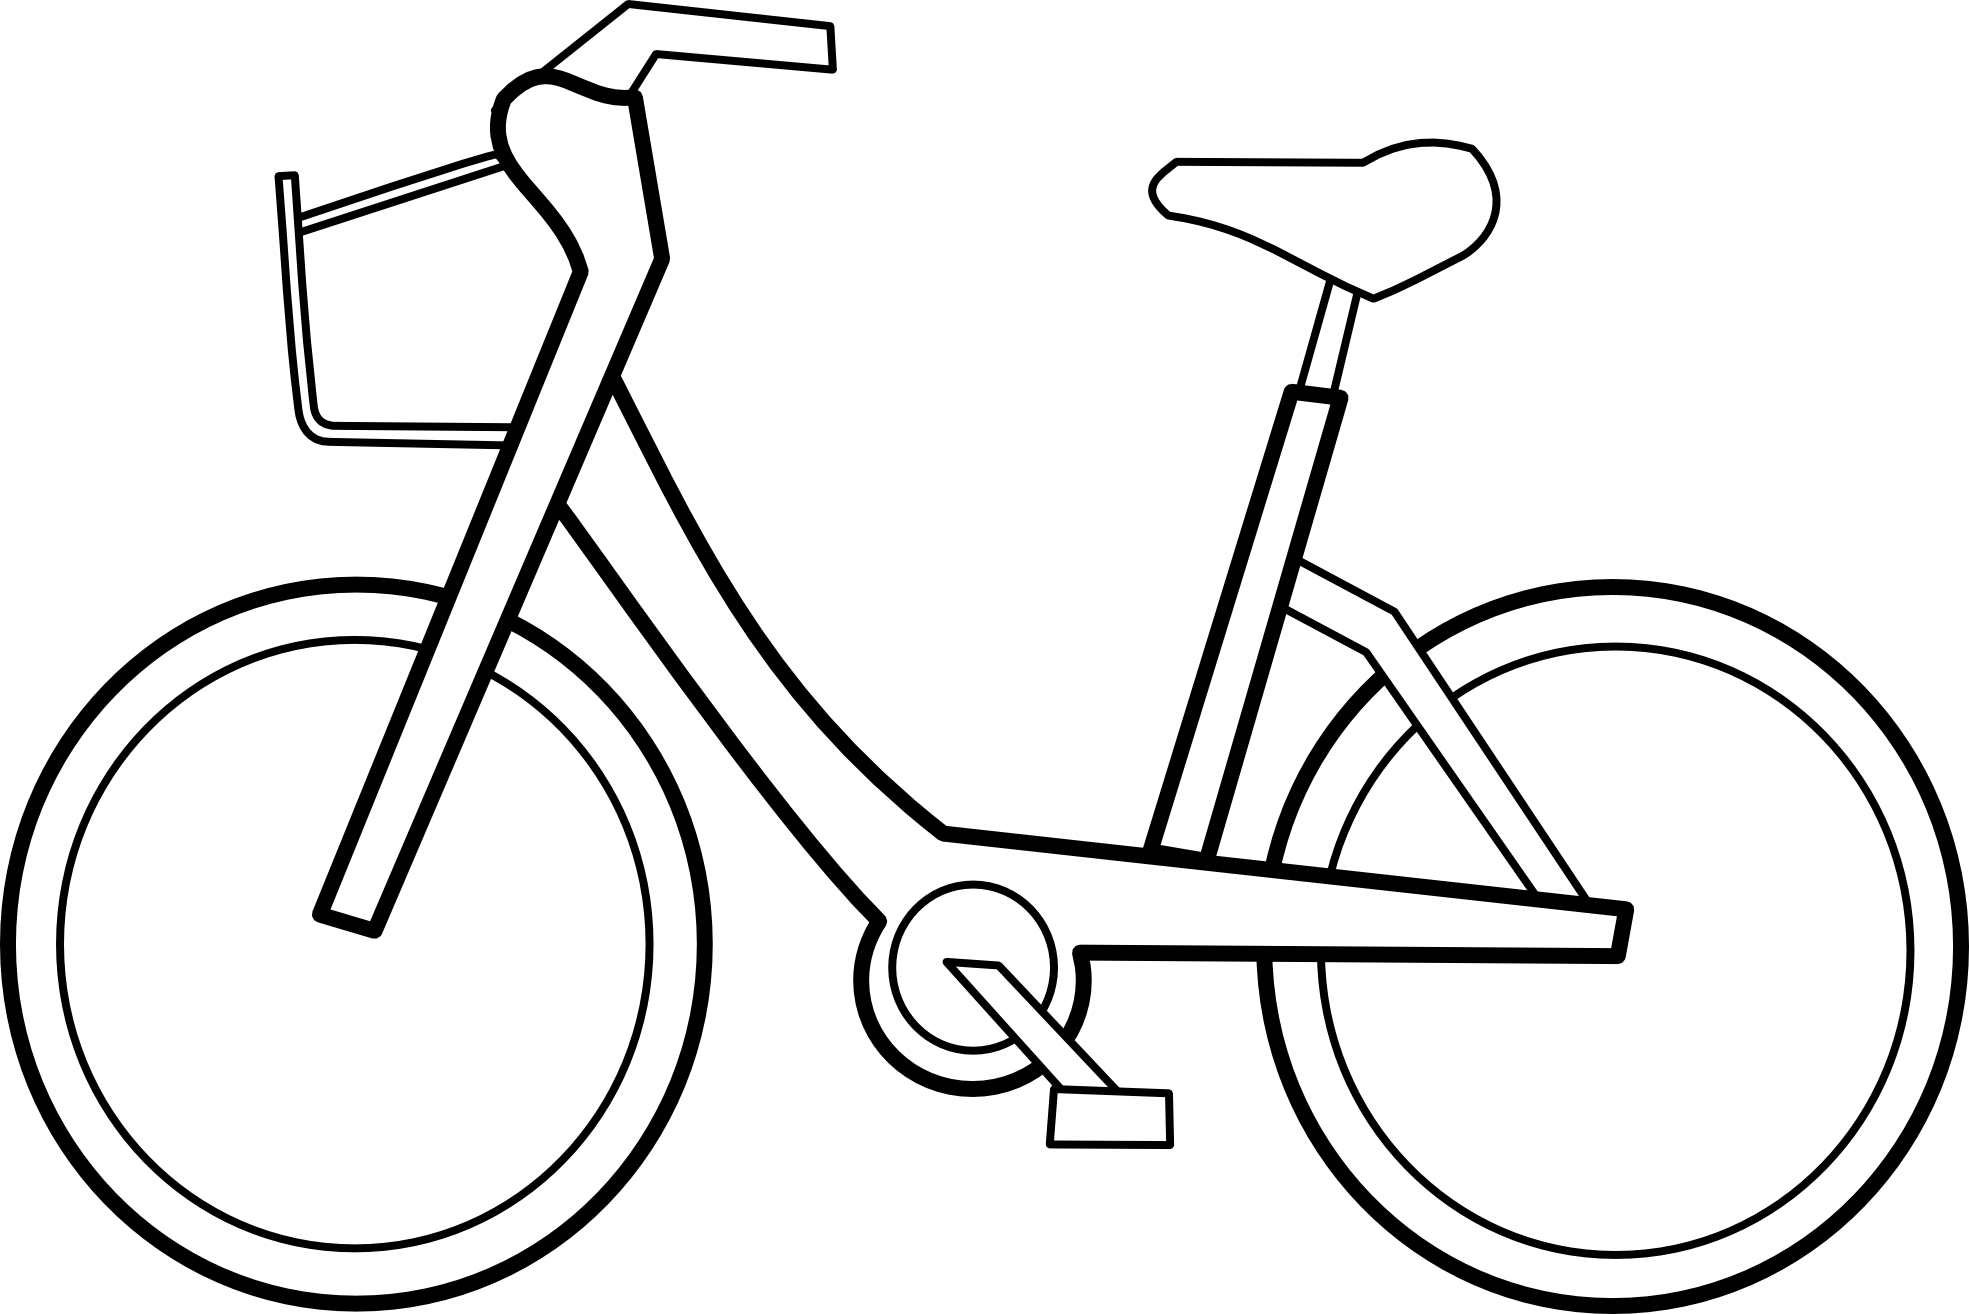 Free Bike Clipart Transparent, Download Free Clip Art, Free.